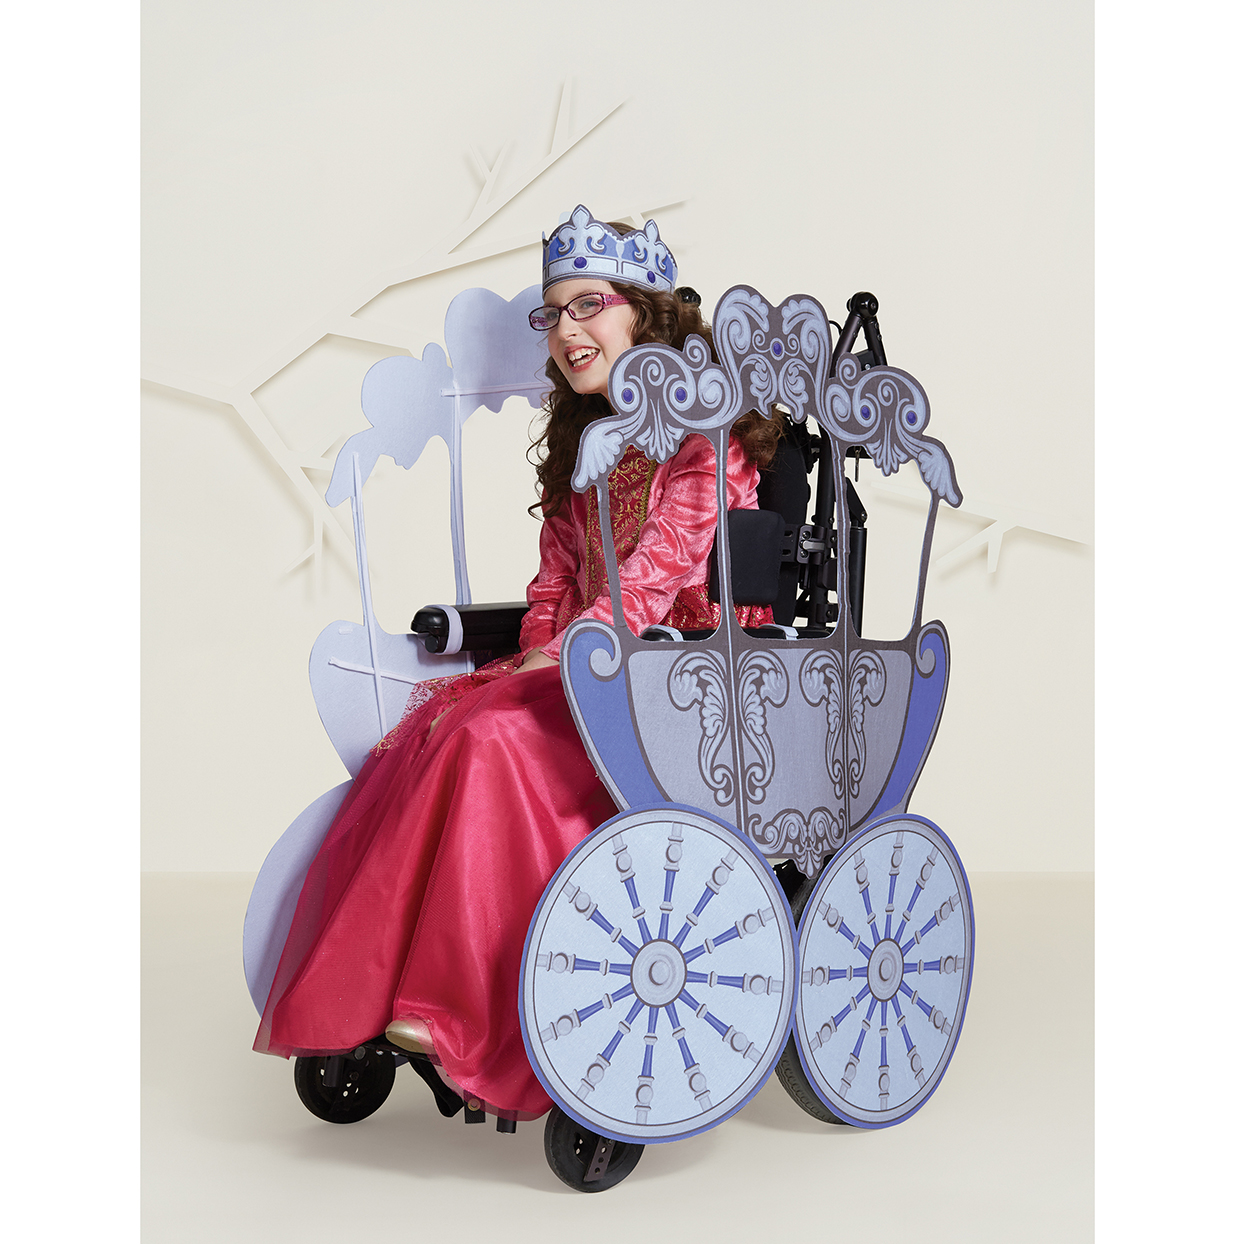 Target adaptive princess costume with girl in wheelchair decorate to look like purple carriage